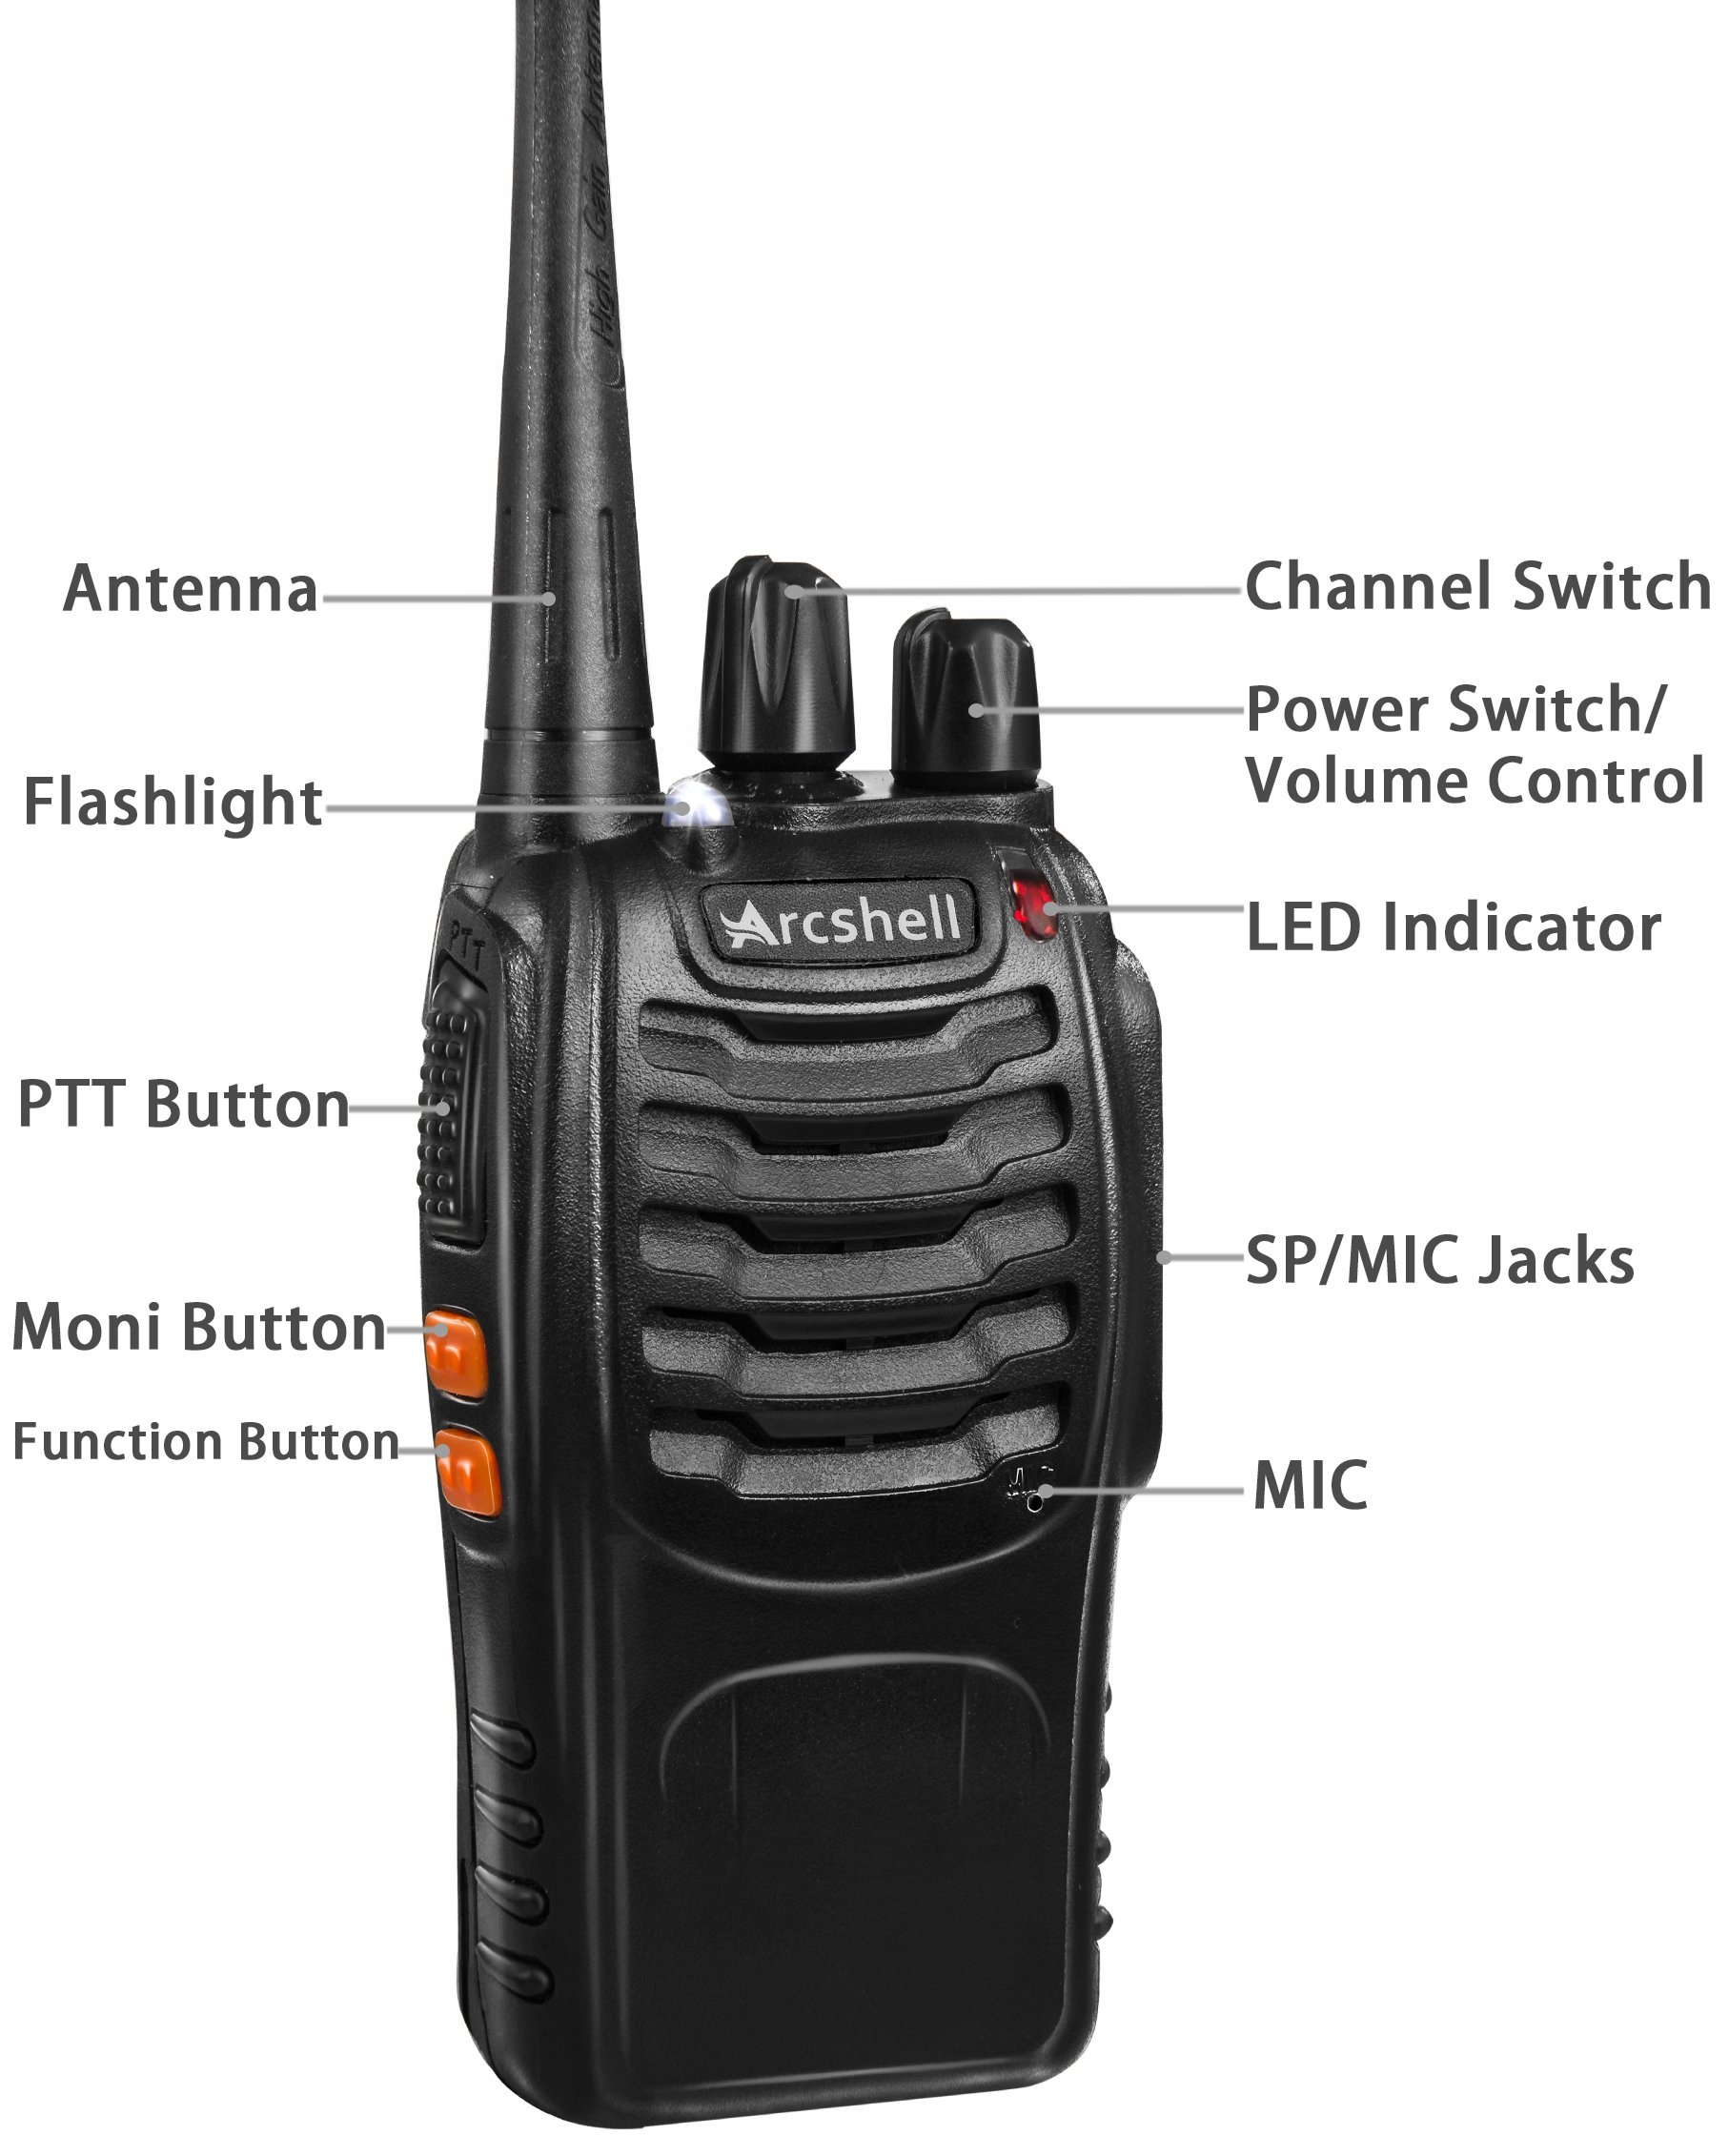 Arcshell Rechargeable Long Range Two-way Radios with Earpiece 2 Pack UHF 400-470Mhz Walkie Talkies Li-ion Battery and Charger included by Arcshell (Image #3)